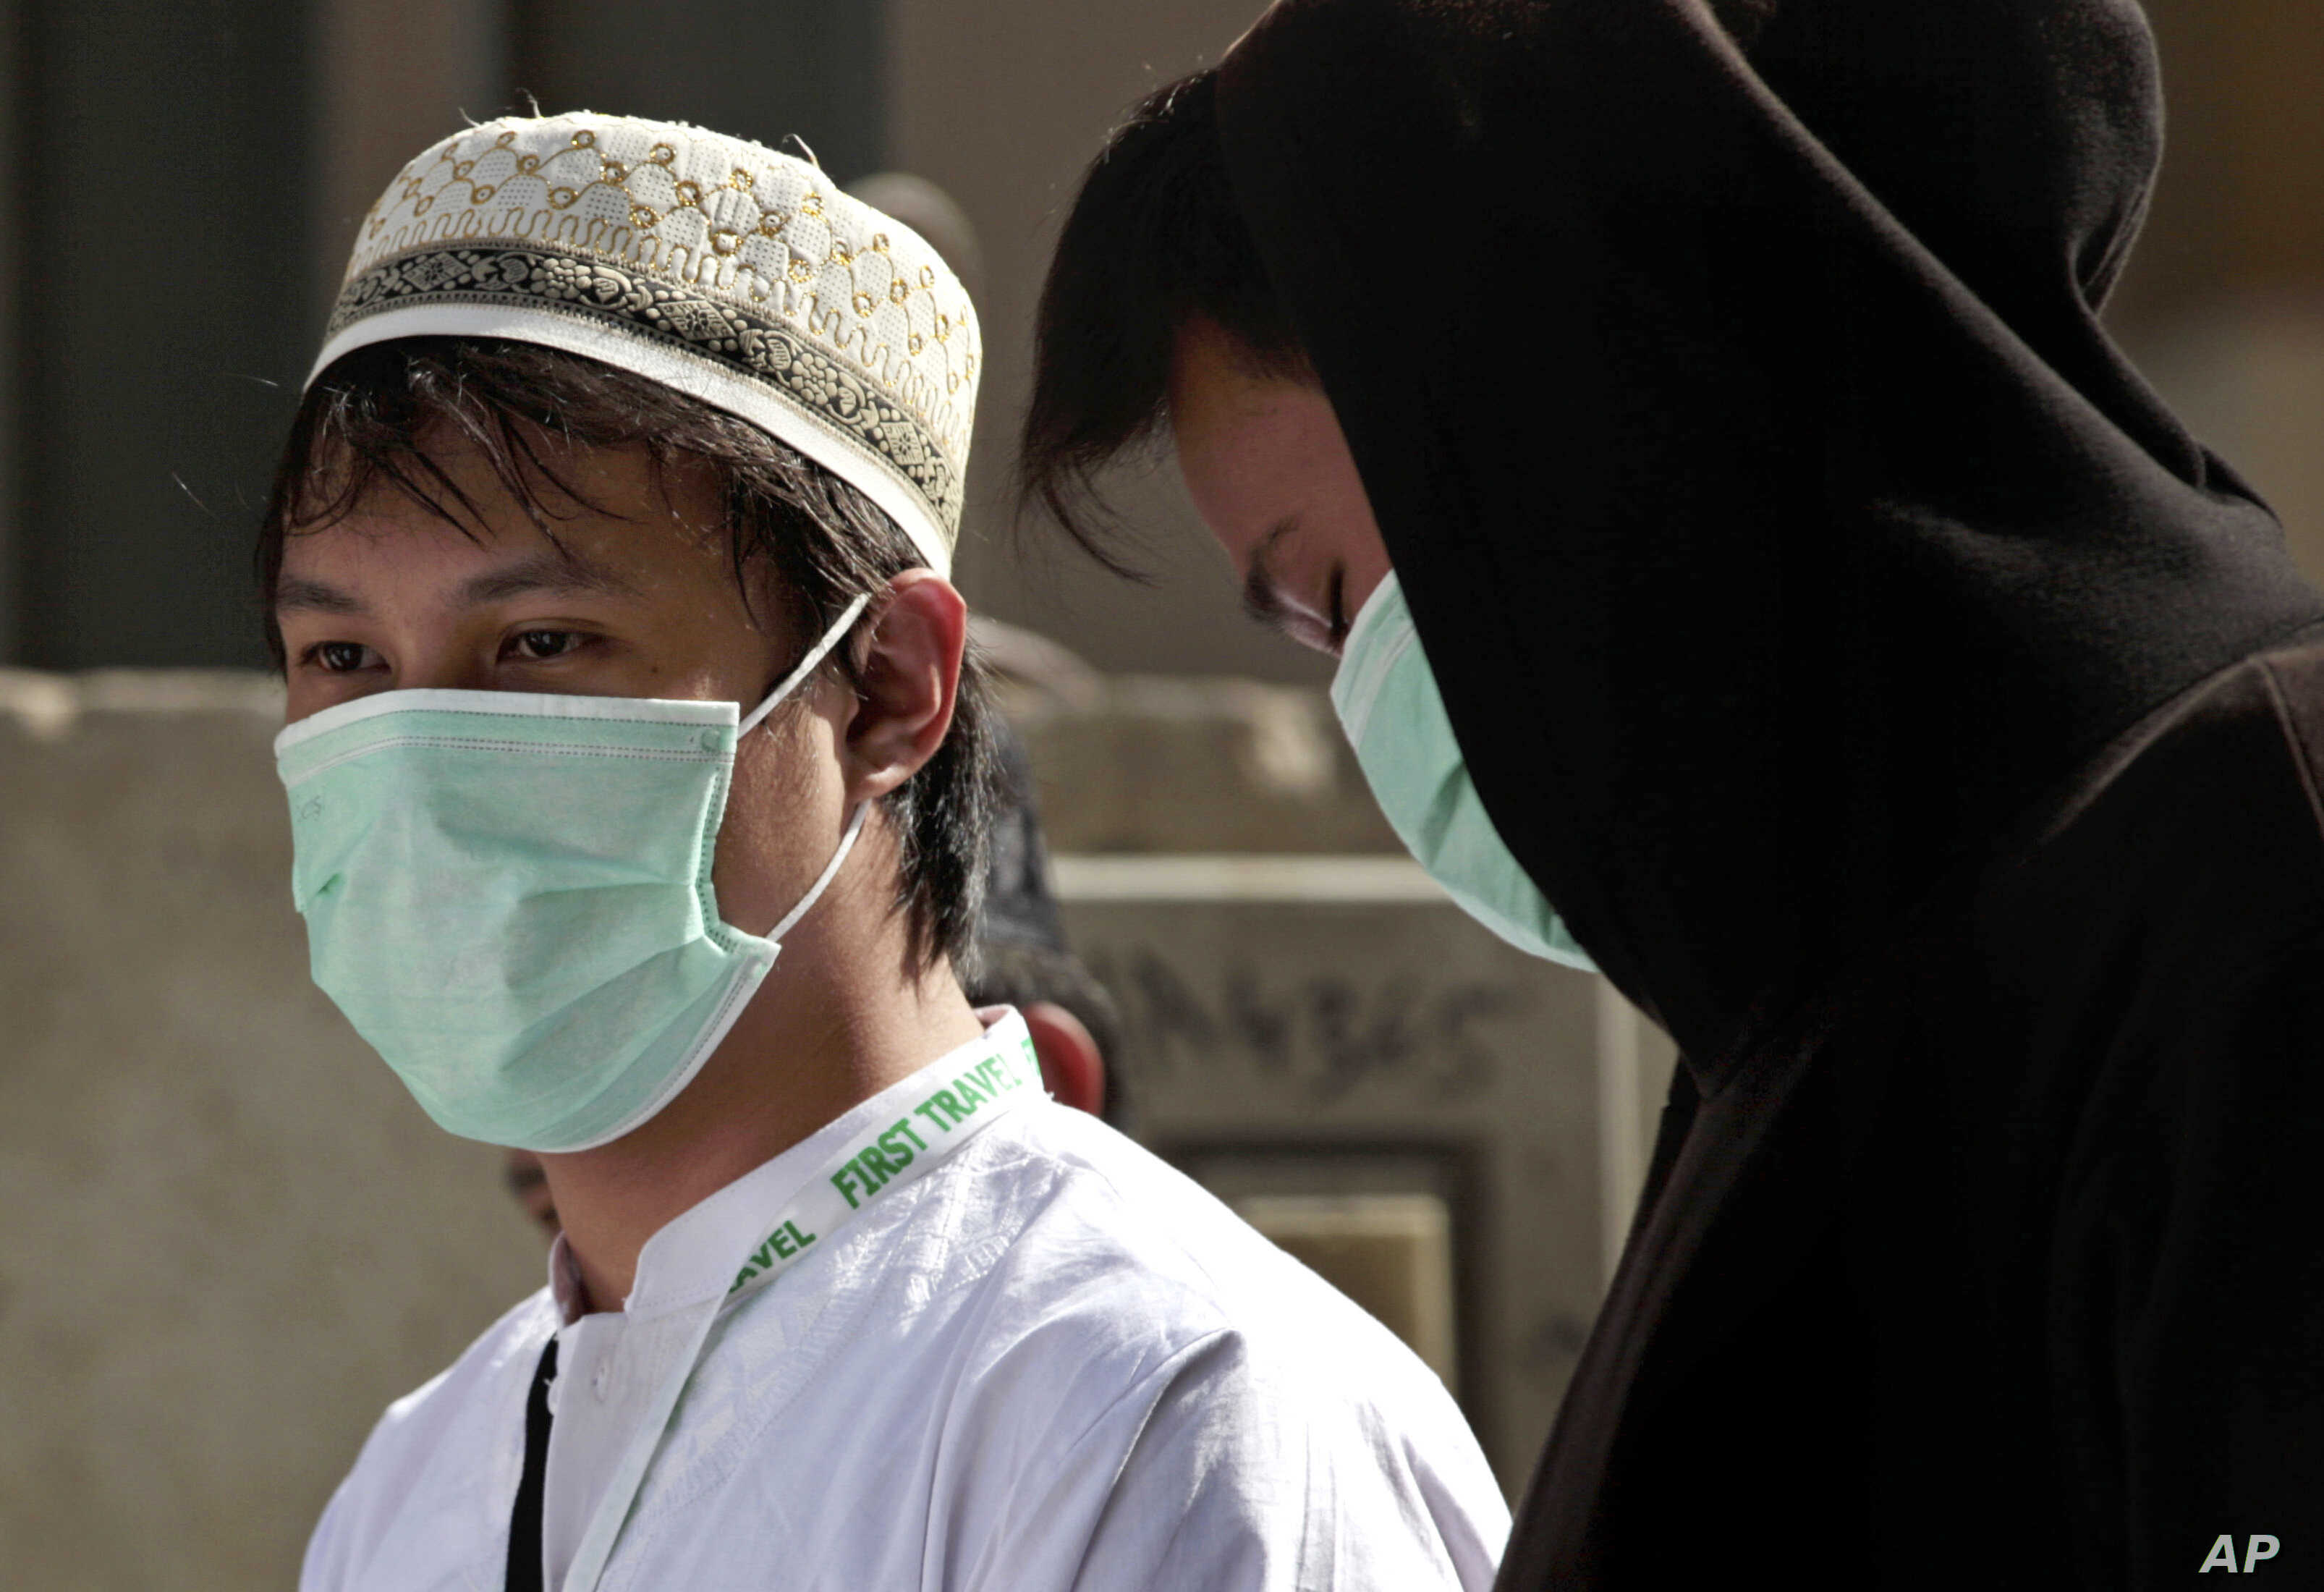 FILE - Muslim pilgrims wear surgical masks to help prevent infection from the MERS respiratory virus in Mecca, Saudi Arabia, May 13, 2014.